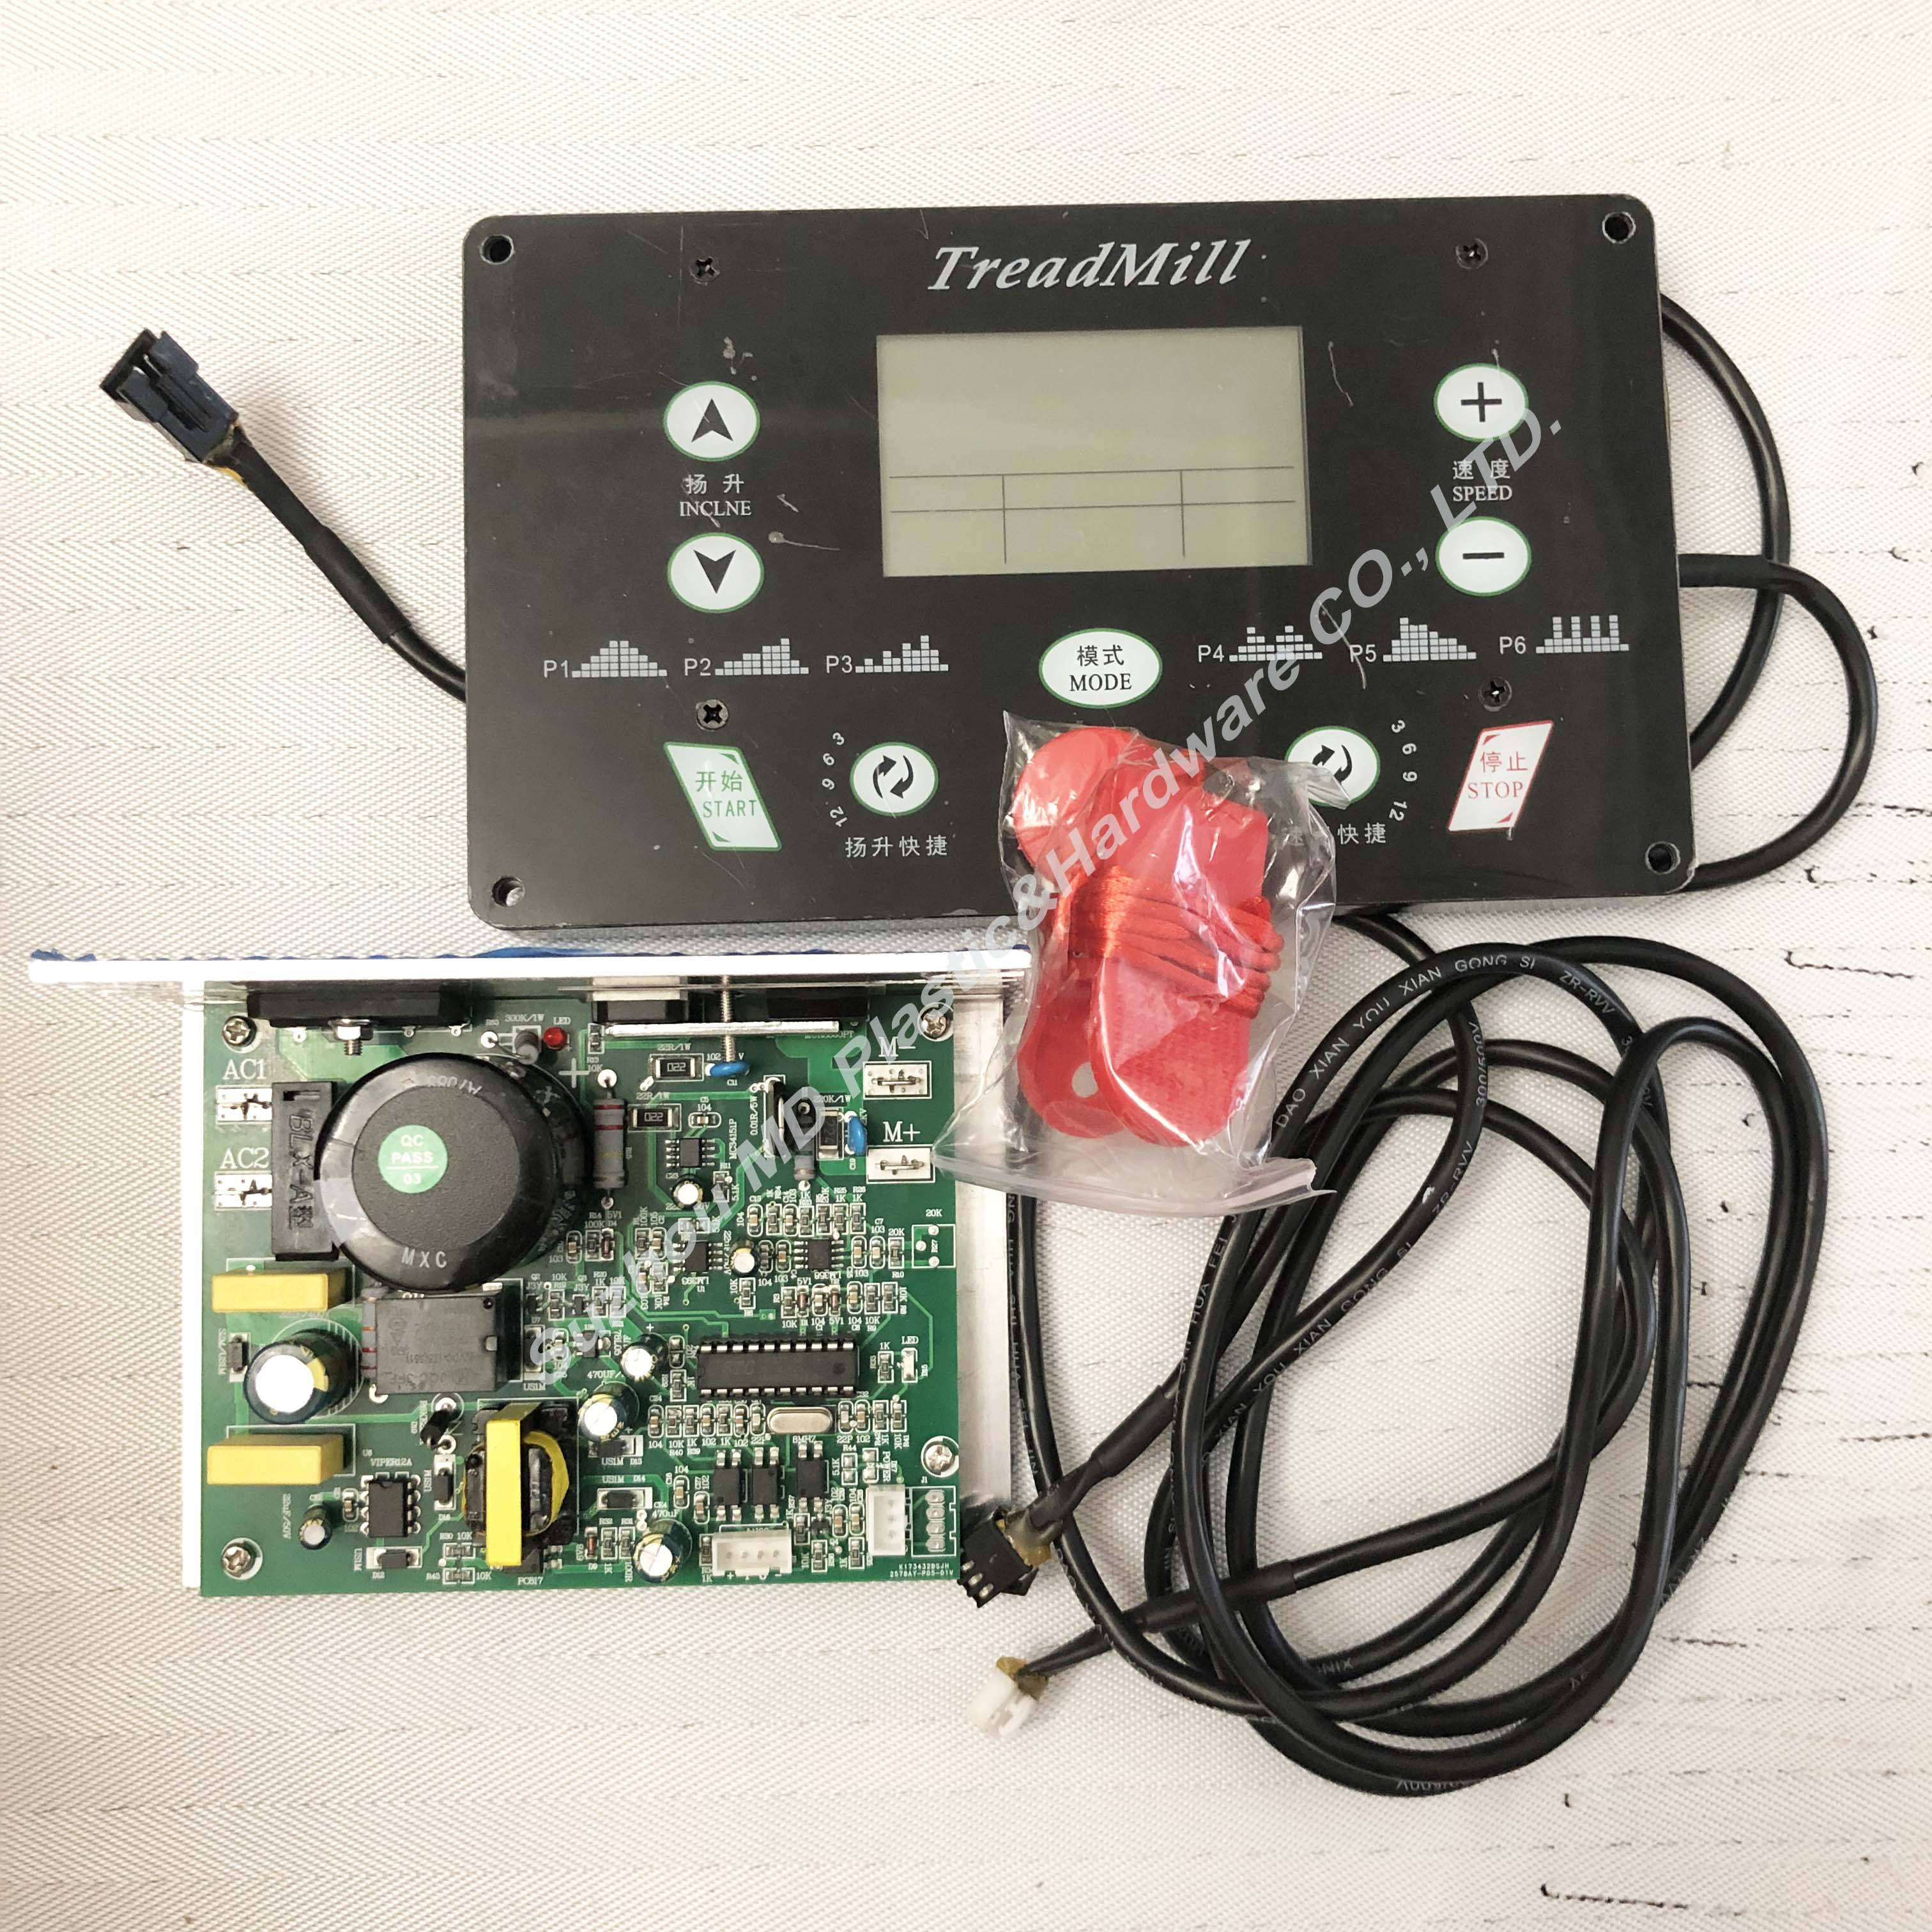 one kit included universal treadmill DC motor control 0 to 4 HP,touch key console display,cables,safety key,sensor